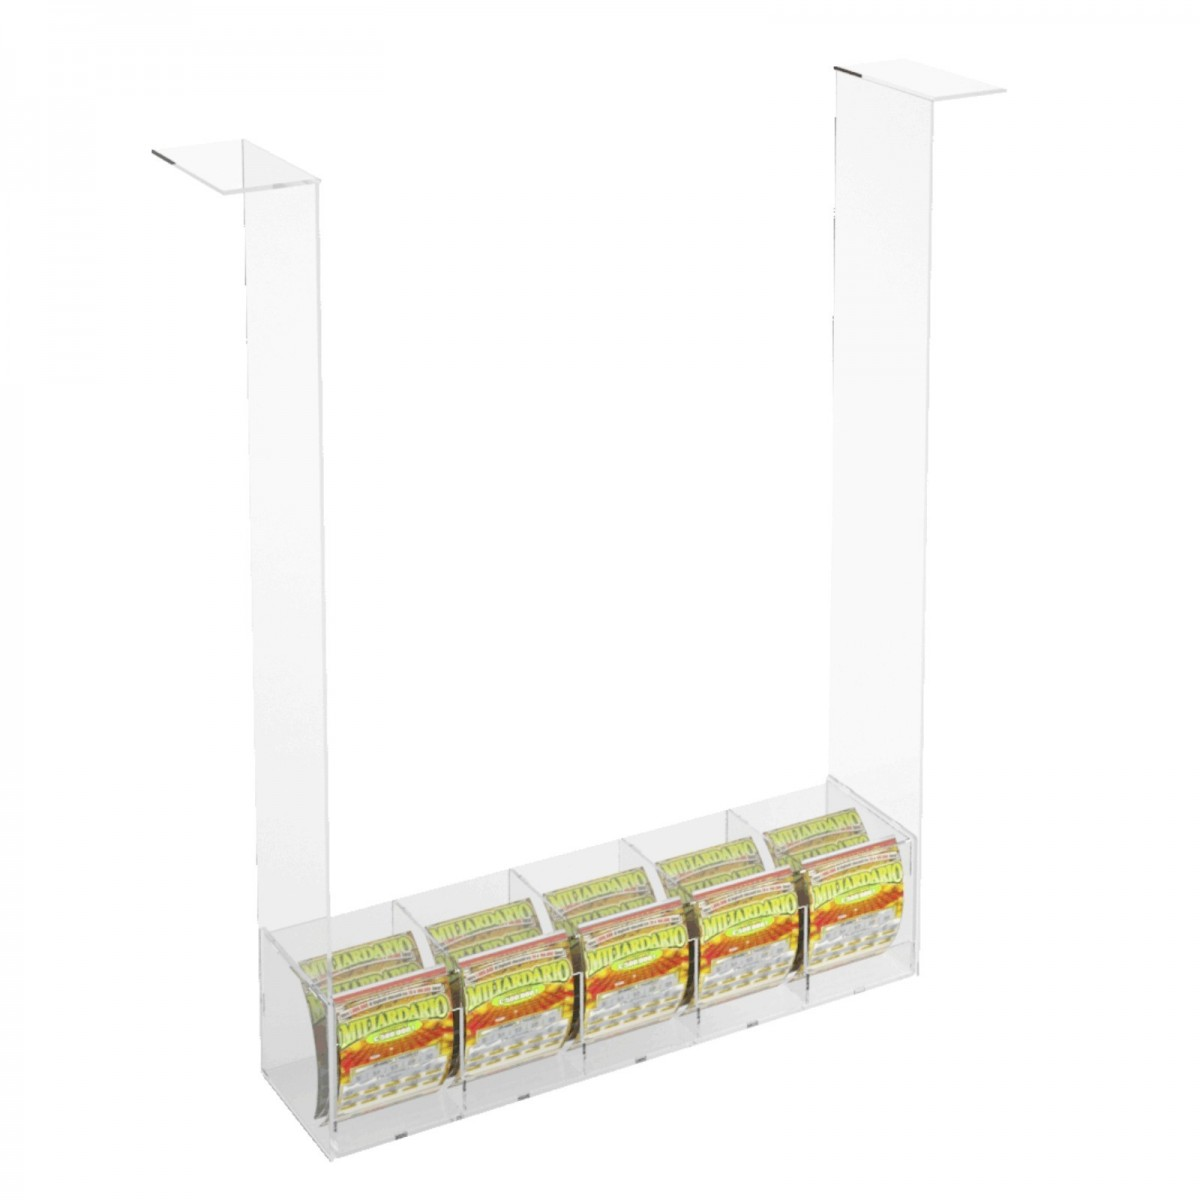 Acrylic countertop scratch and win card holder display without locking door